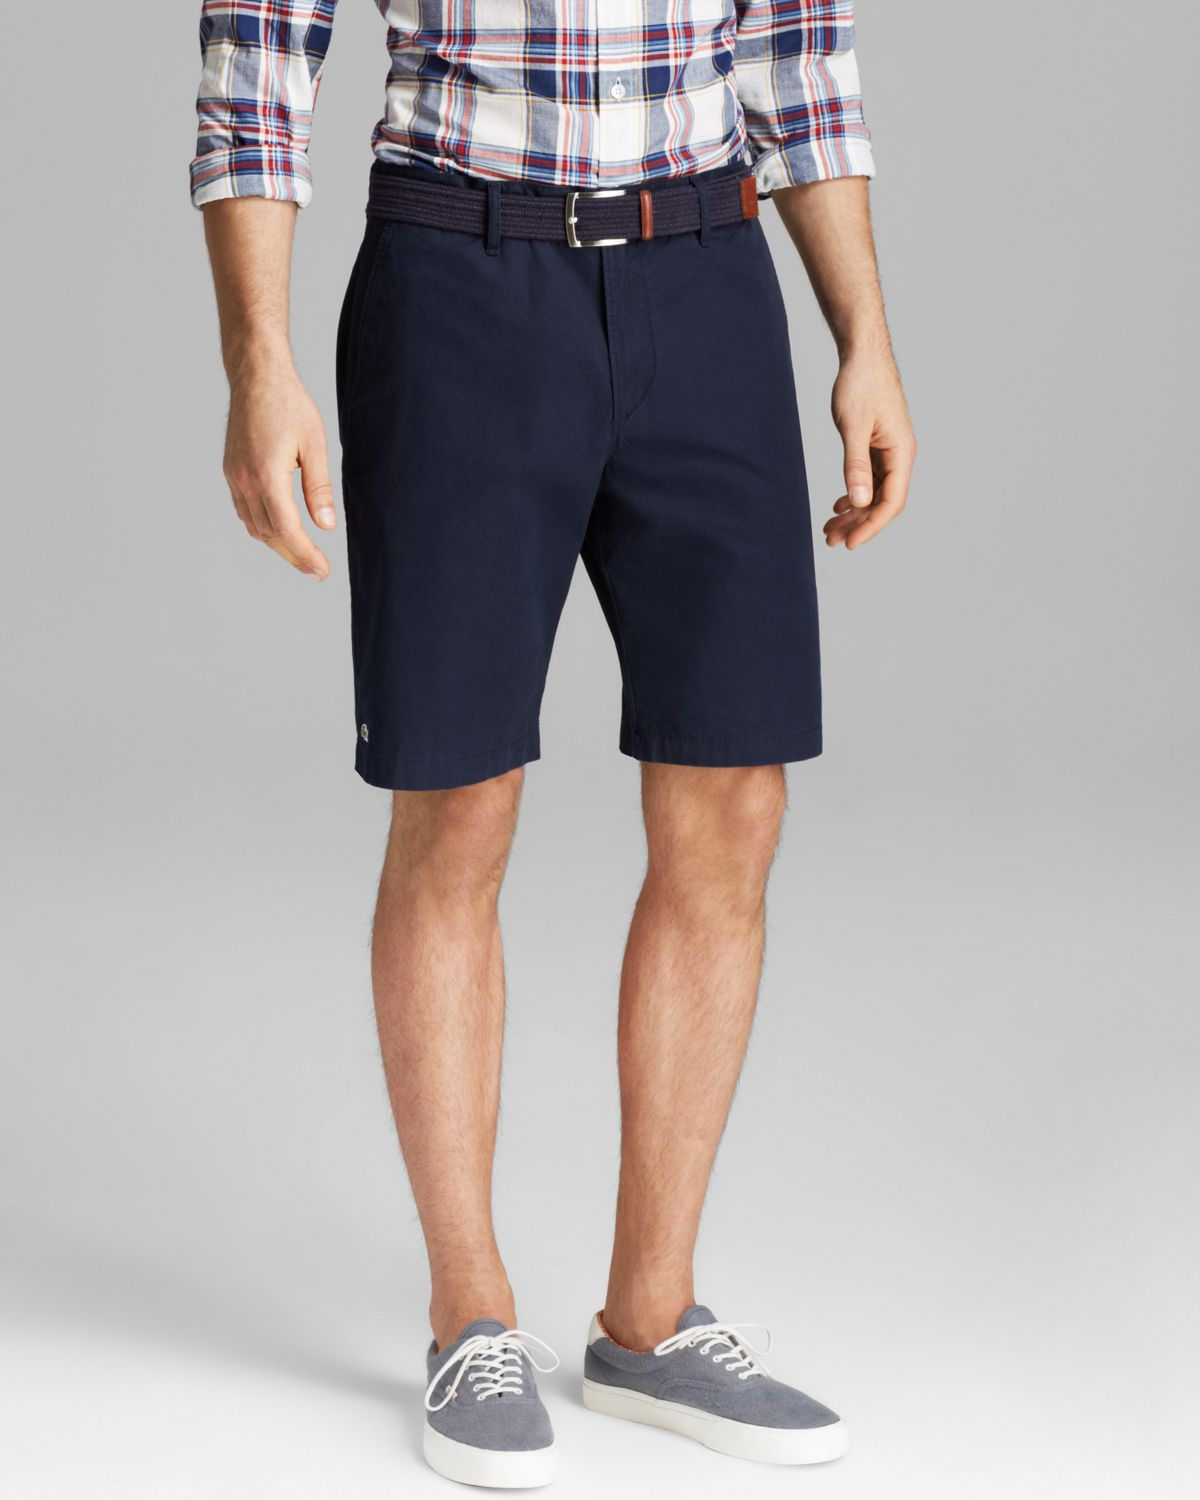 Lyst Lacoste Classic Fit Bermuda Shorts In Blue For Men